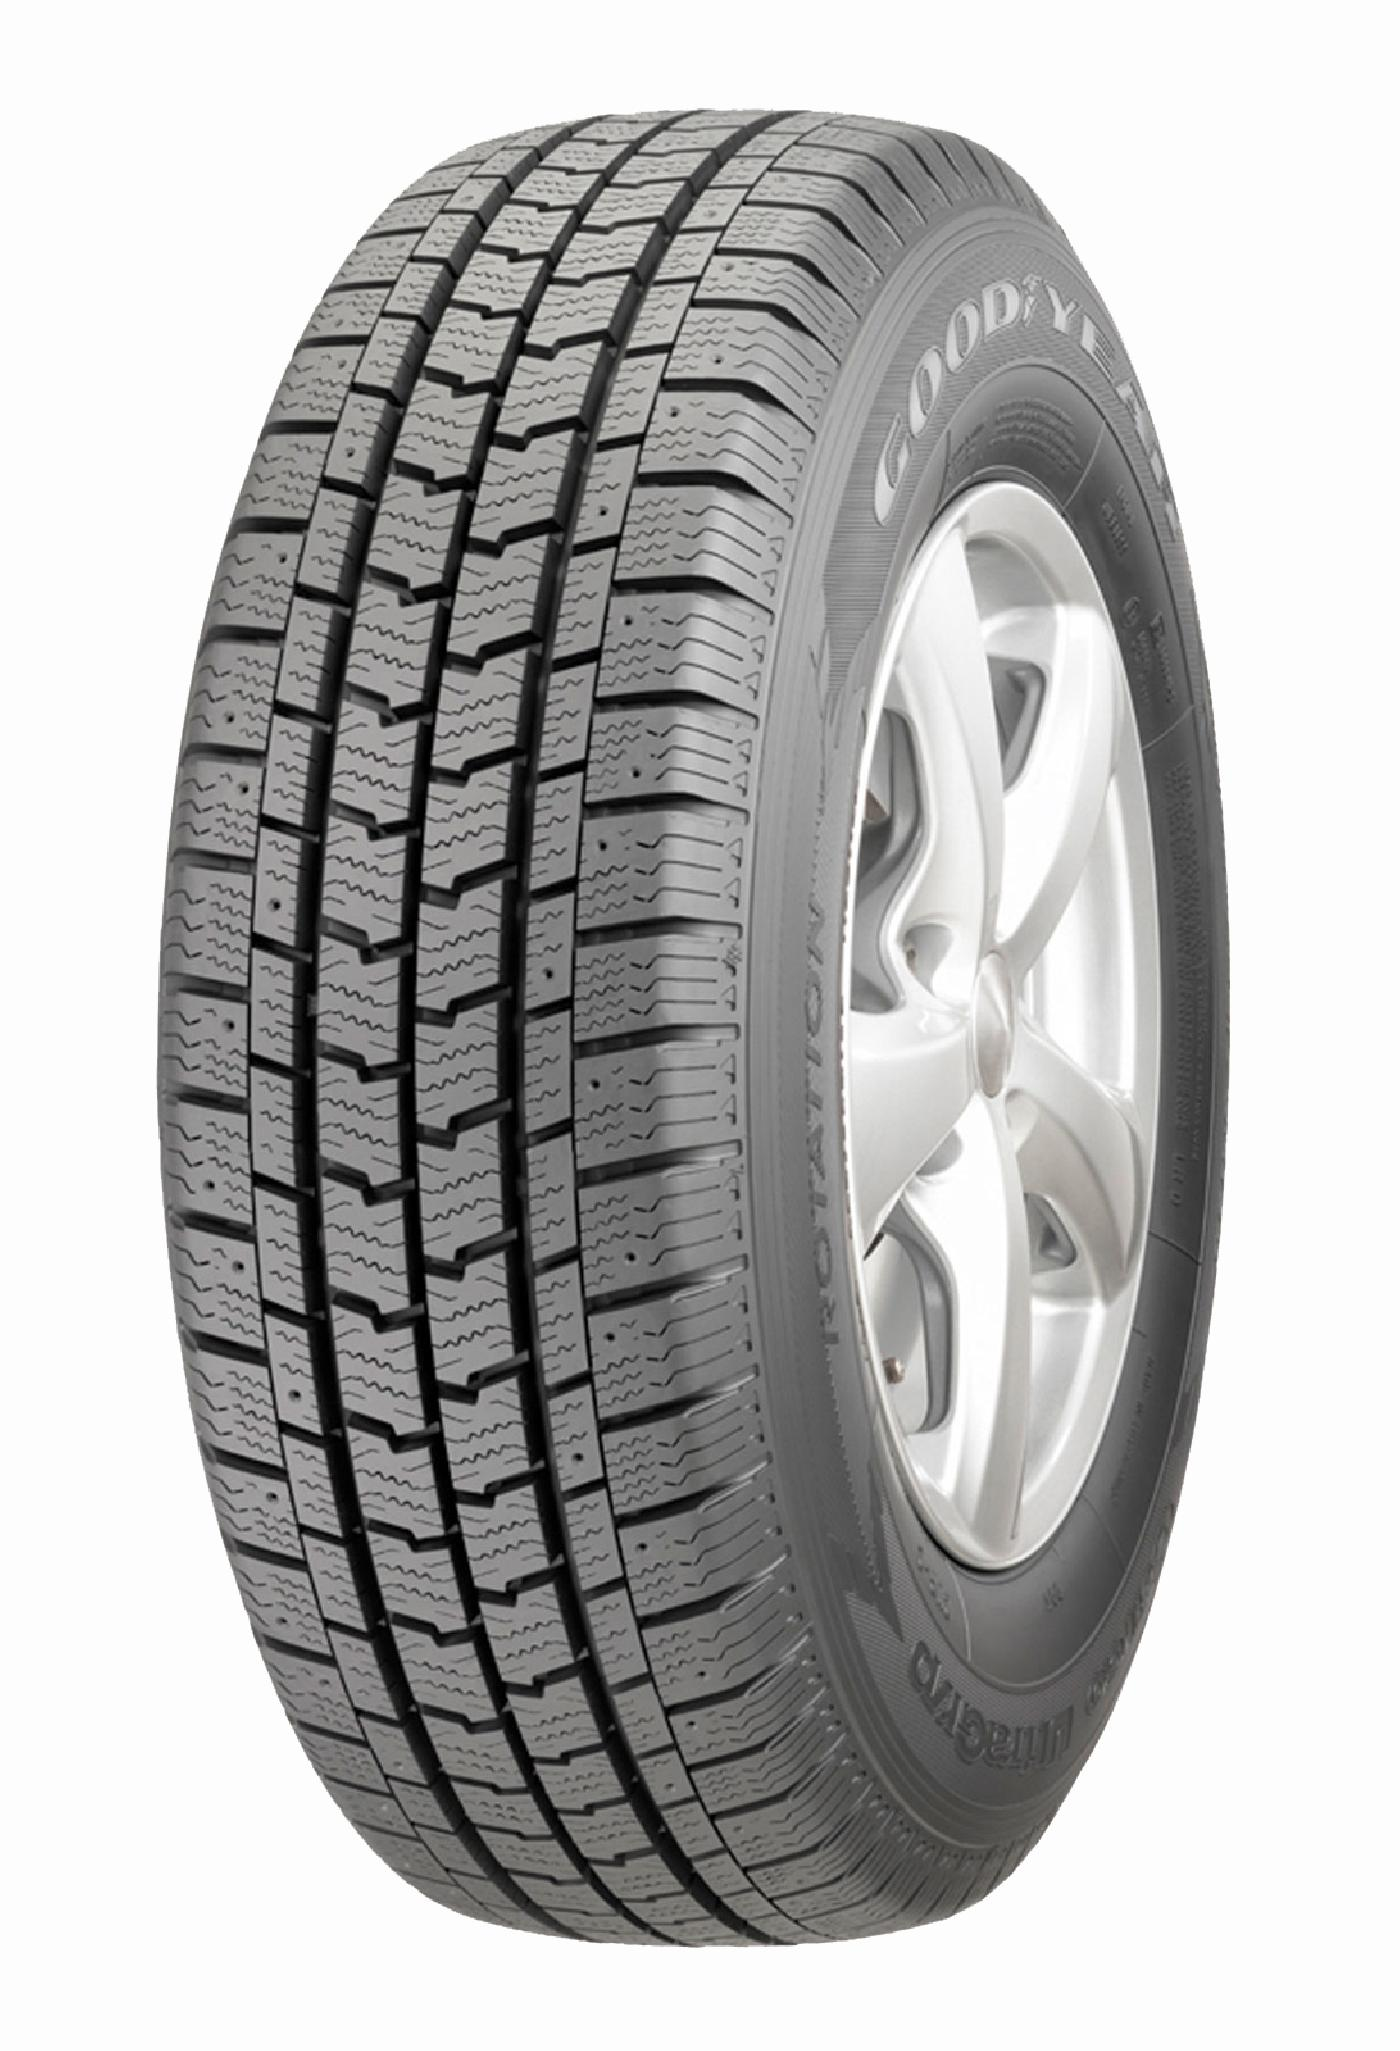 GOODYEAR ULTRA GRIP CARGO 2 215/65 R16C 109/107T